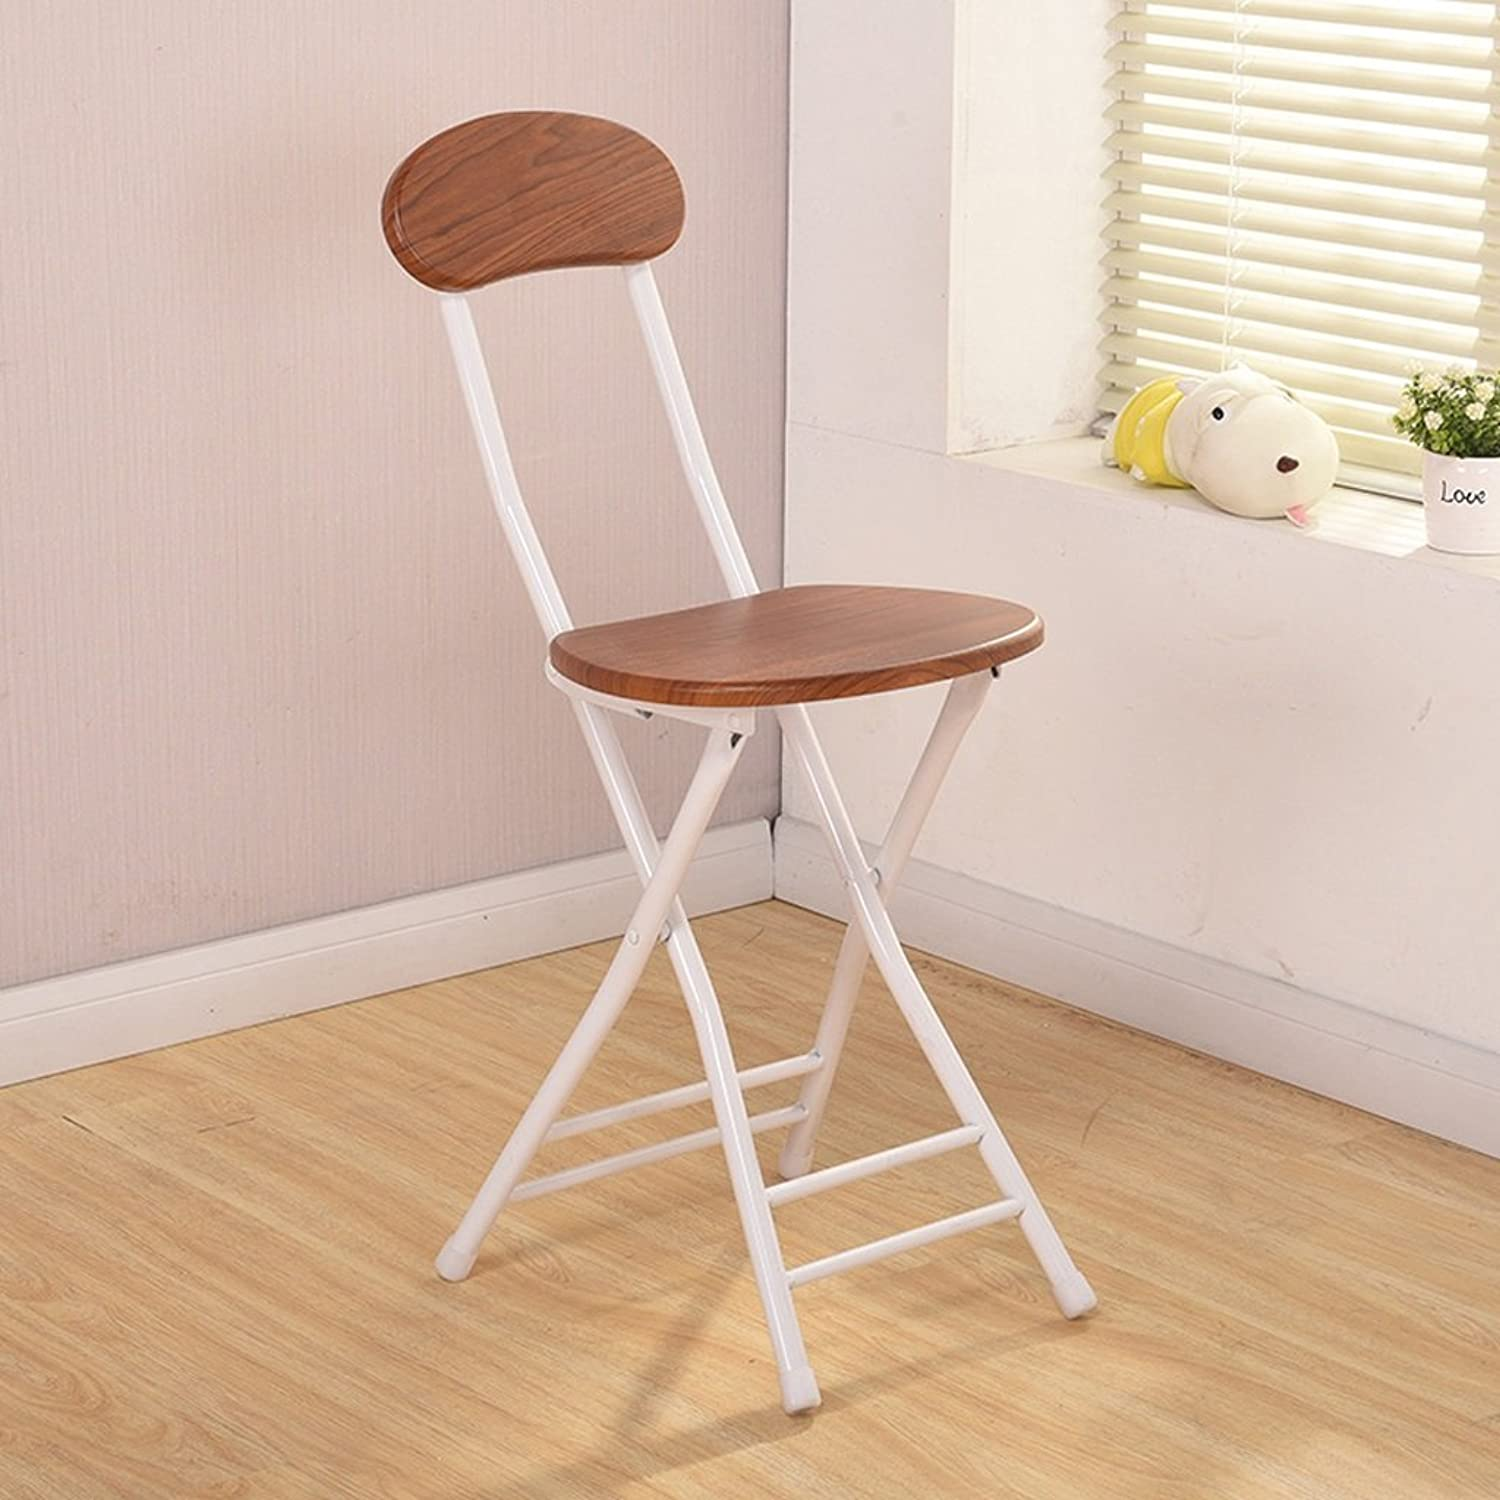 Folding Chair Dining Chair Portable Metal Chair Modern Minimalist Nordic (color   E)